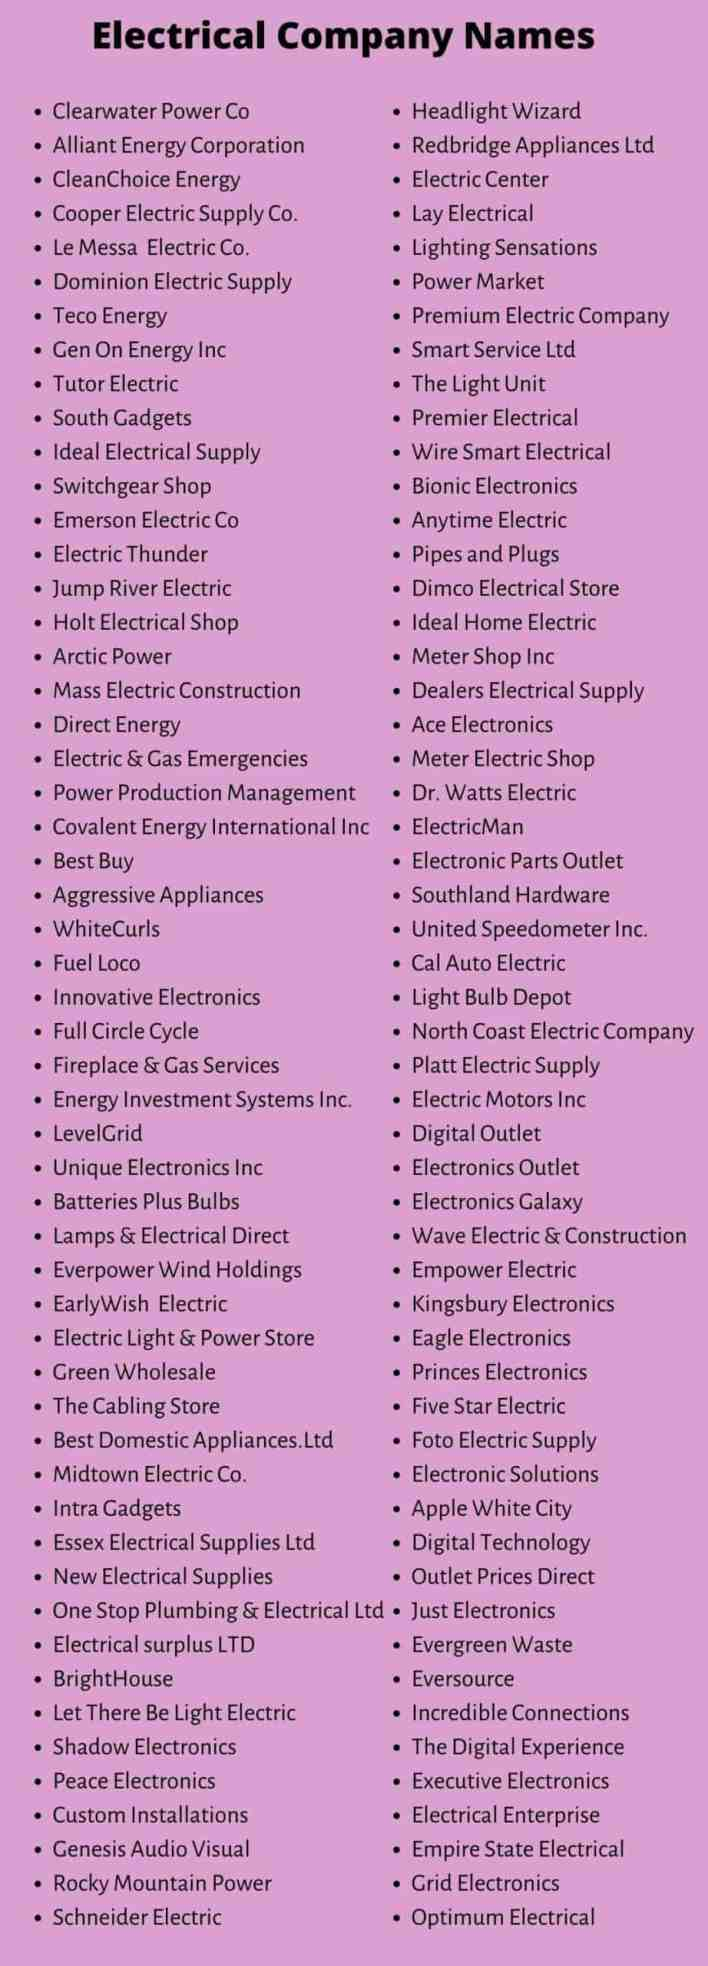 Electrical Company Names